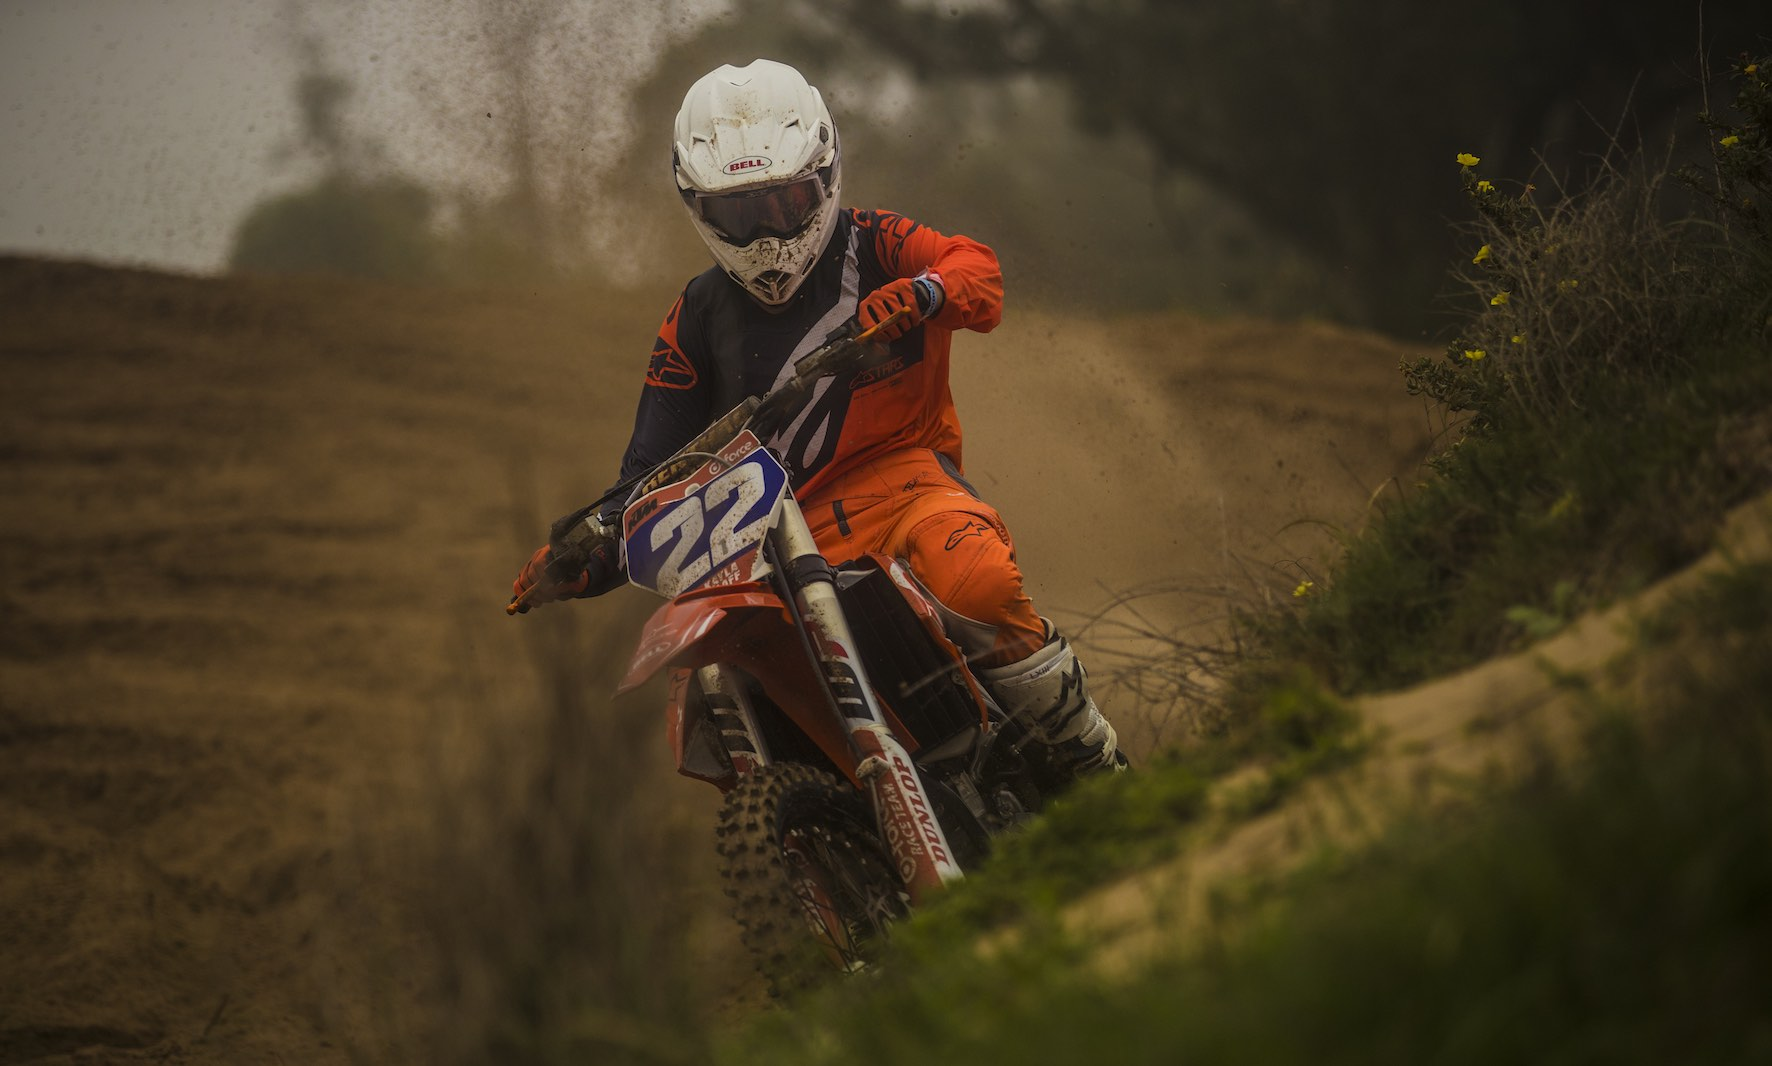 Kayla Raaf racing at Rover Raceway motocross track